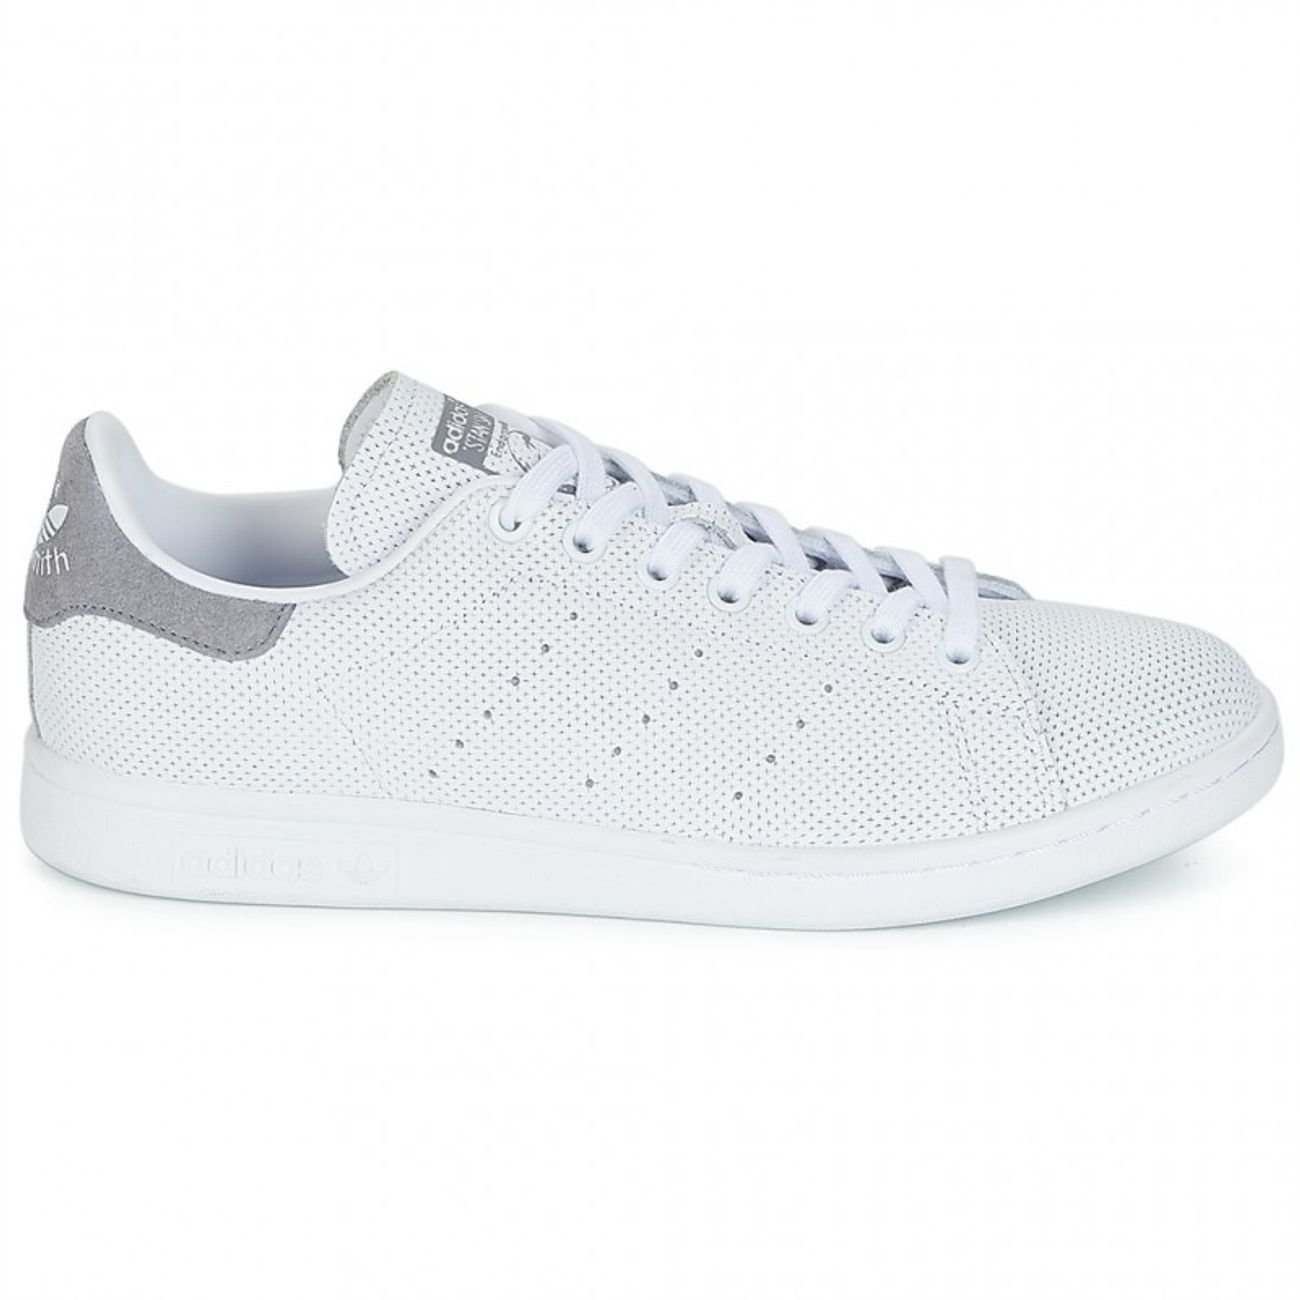 Stan Adidas B41470 Chaussure Cuir grey Outdoor 13 Adulte 45 Smith Cuir textile Blanc PlkXTiwOZu